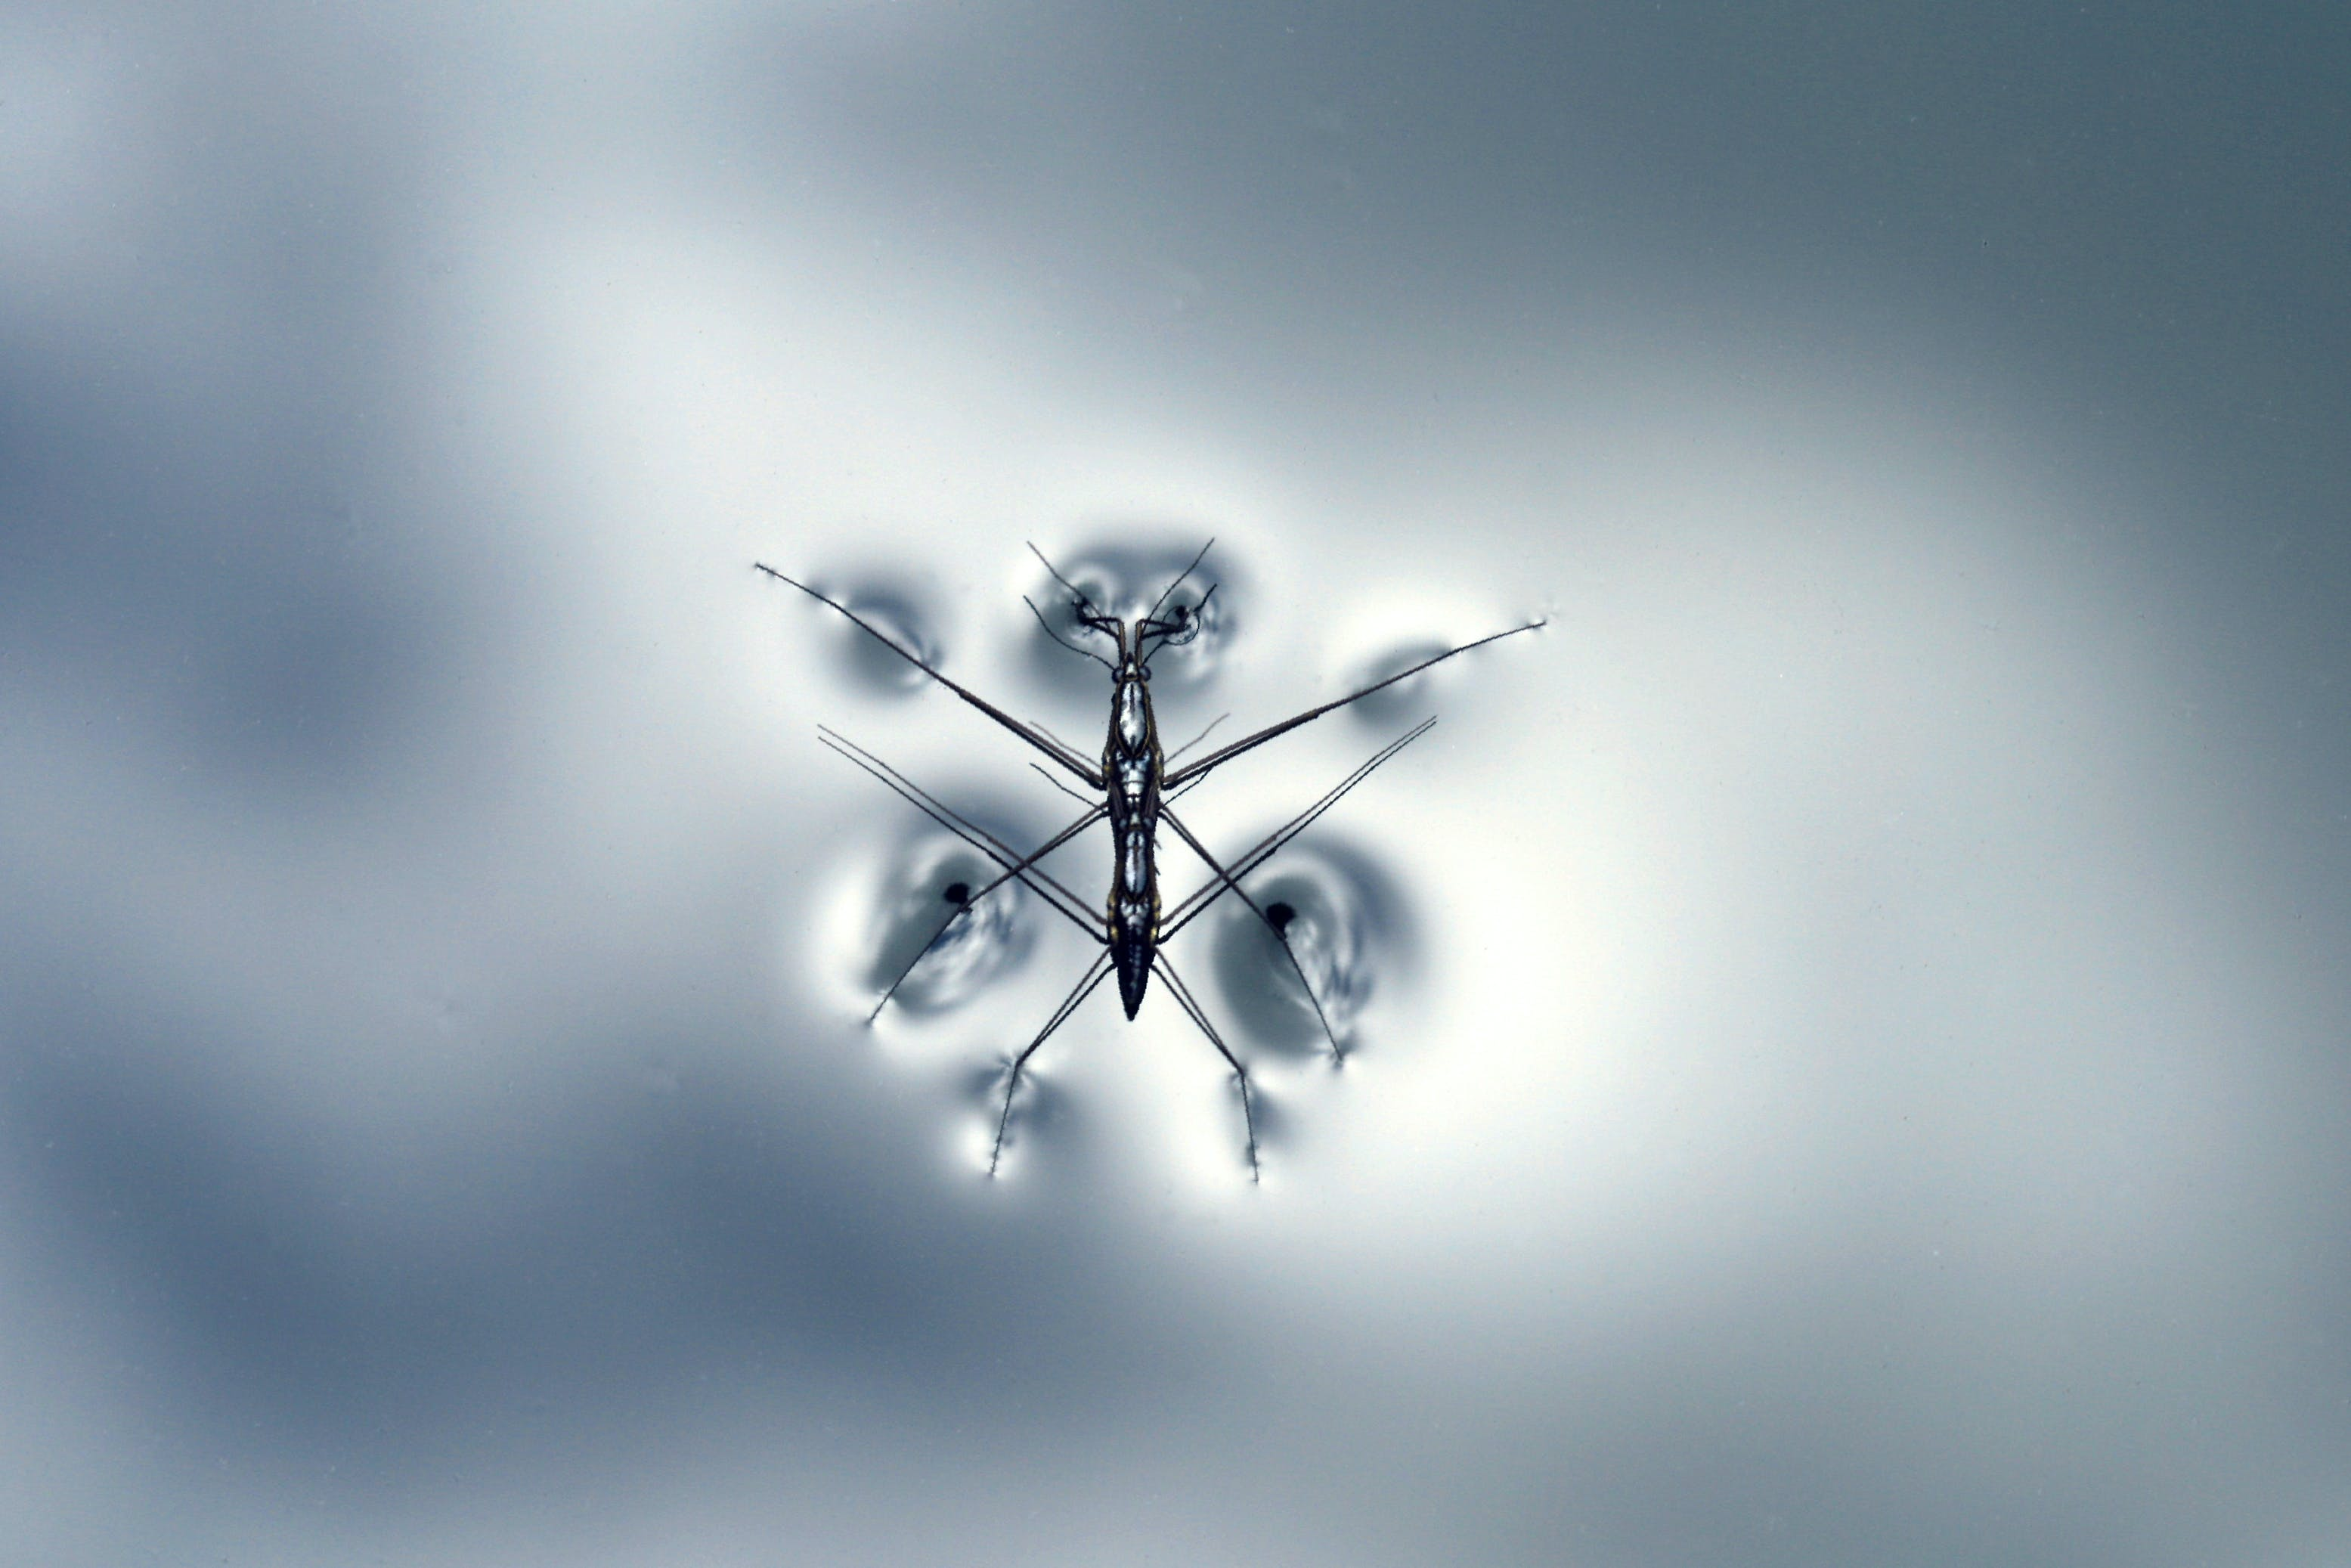 Close-up Photography of Black Water Strider on Water